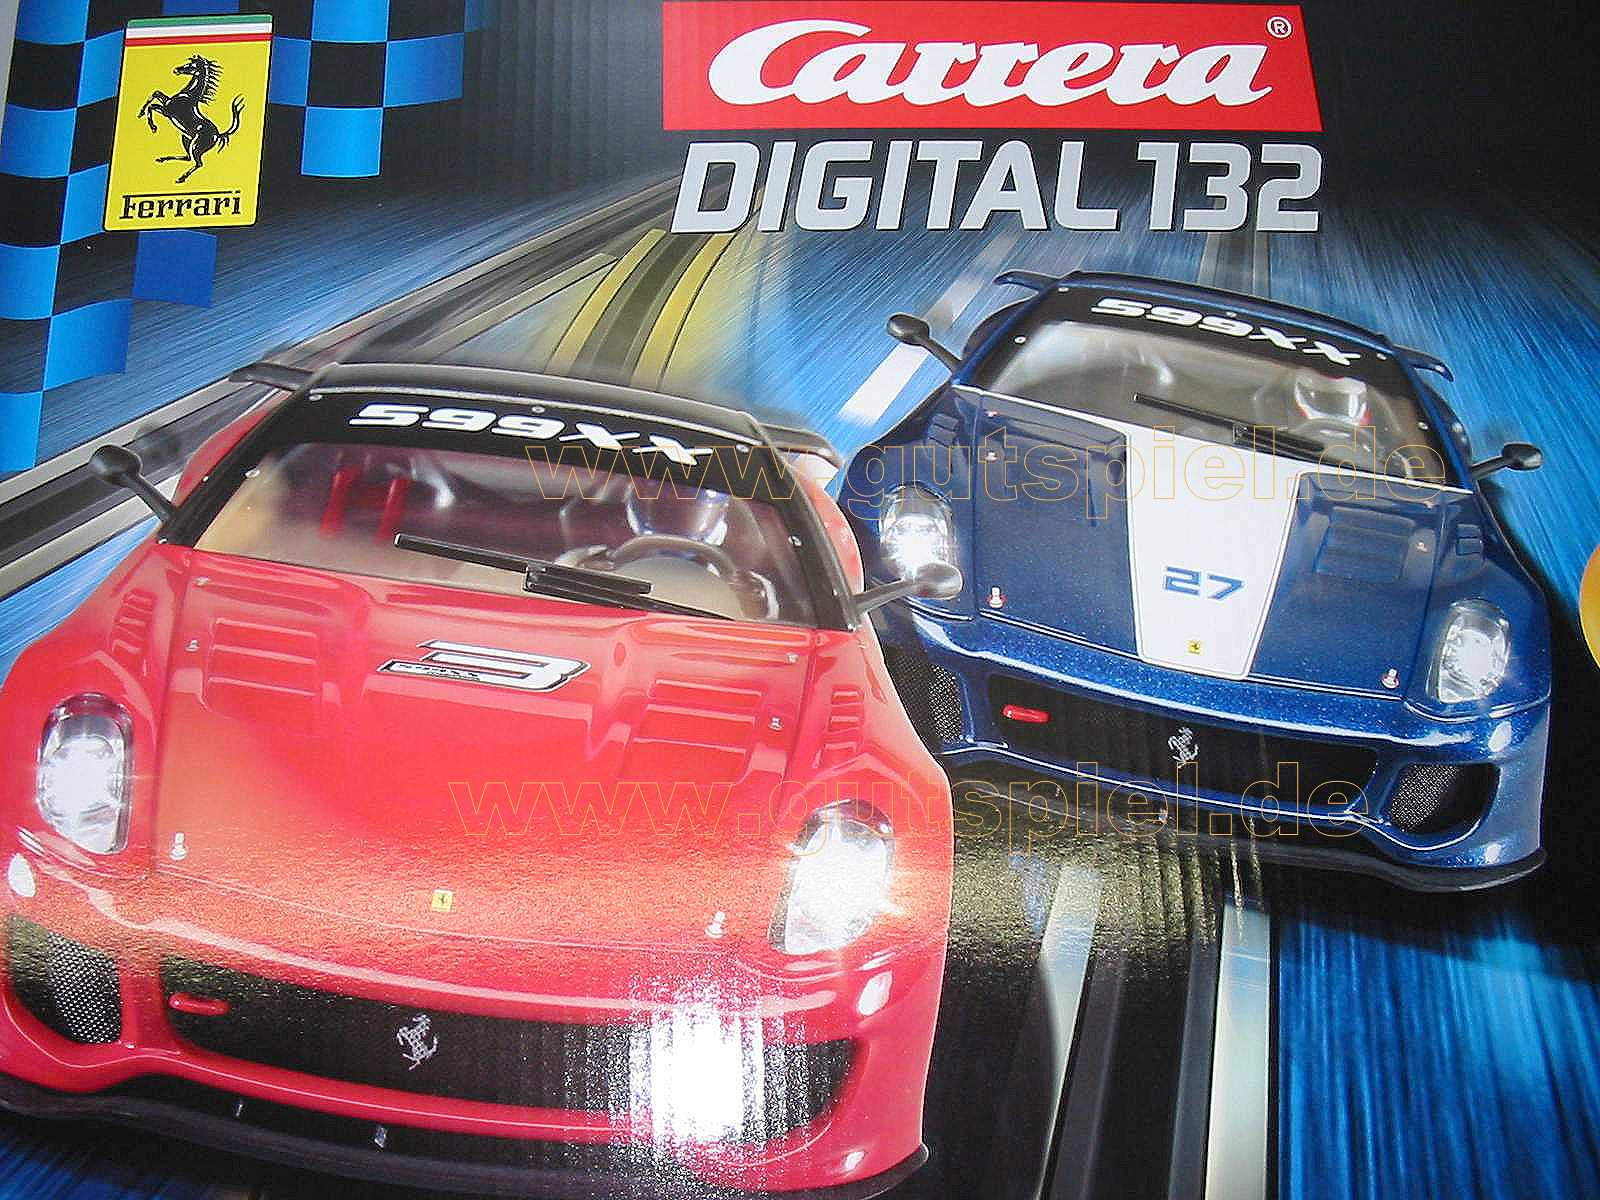 Carrera Digital 132 Ferrari Competition